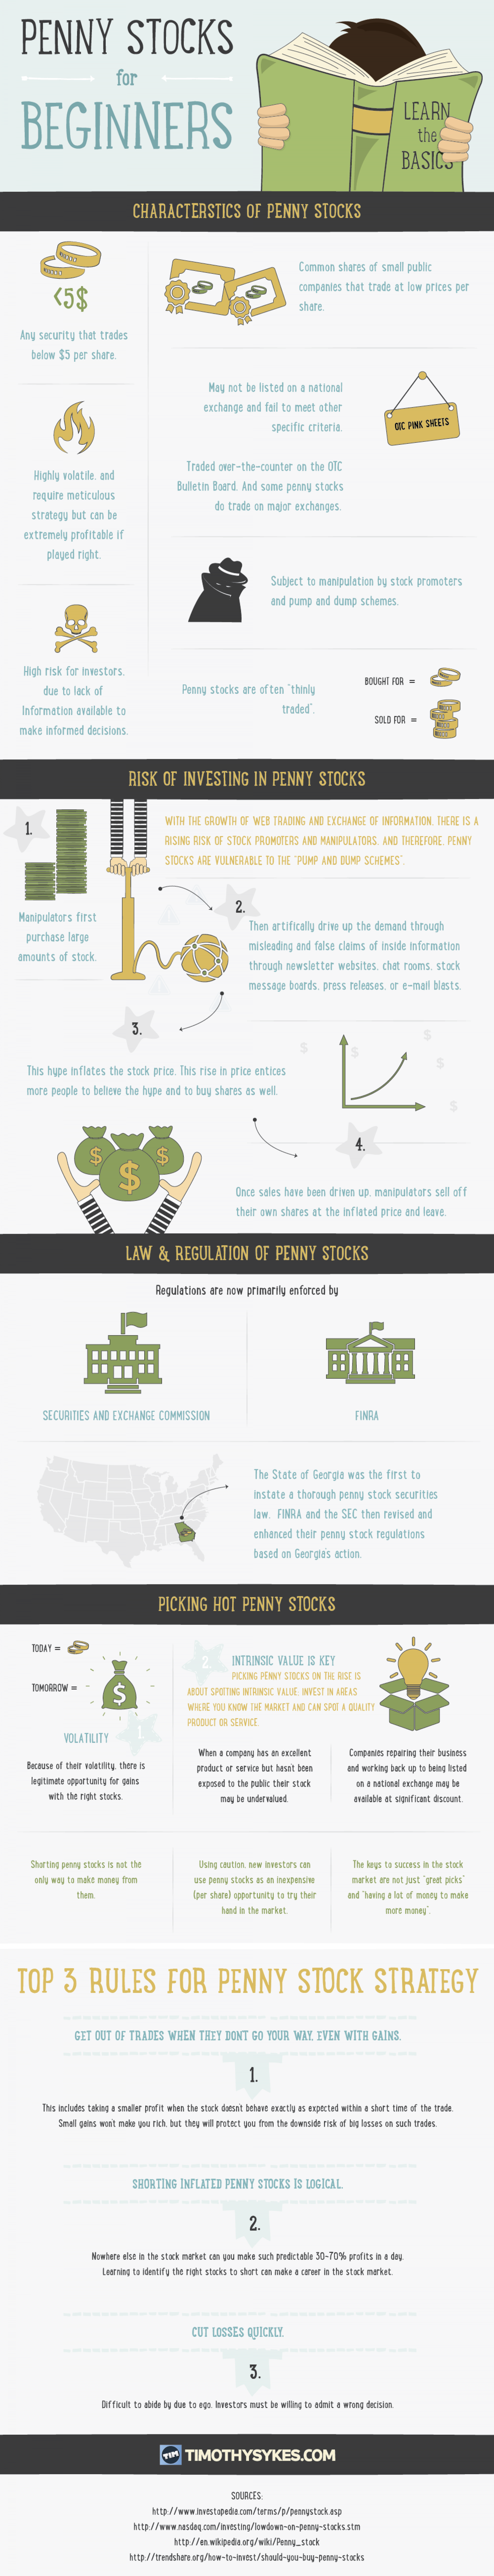 Penny Stocks for Beginners Infographic